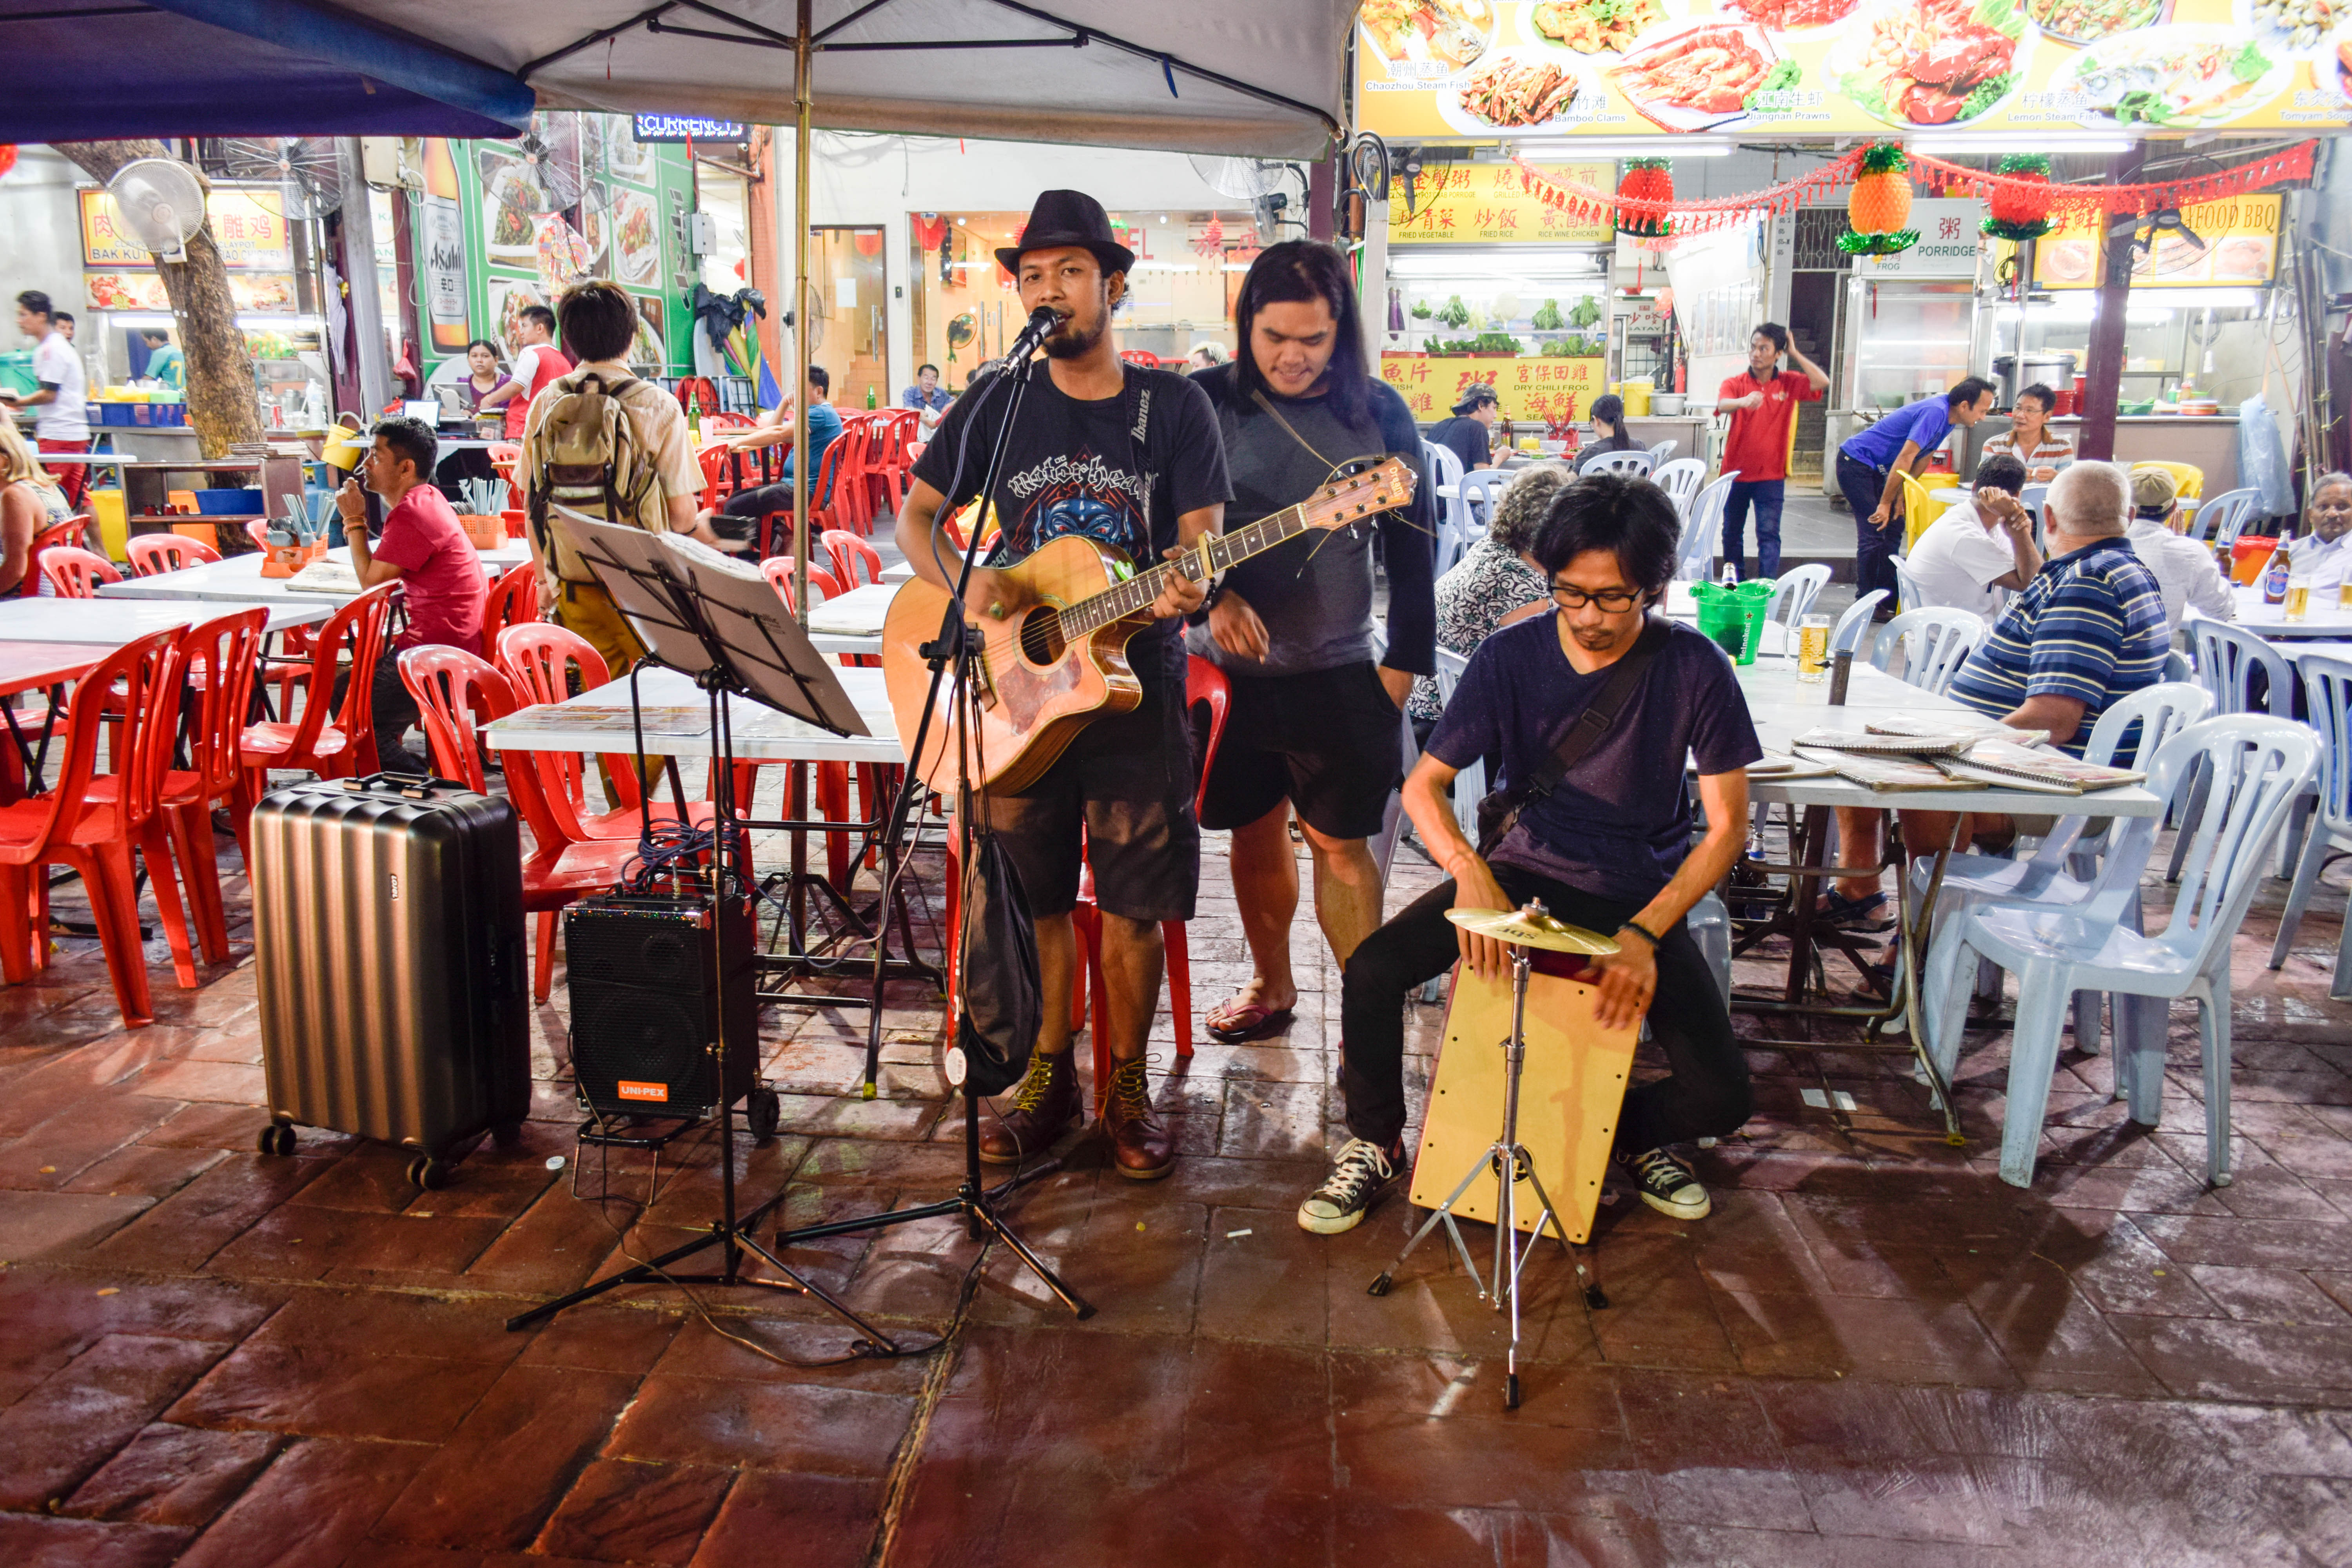 Picture of people singing in Jalan Alor